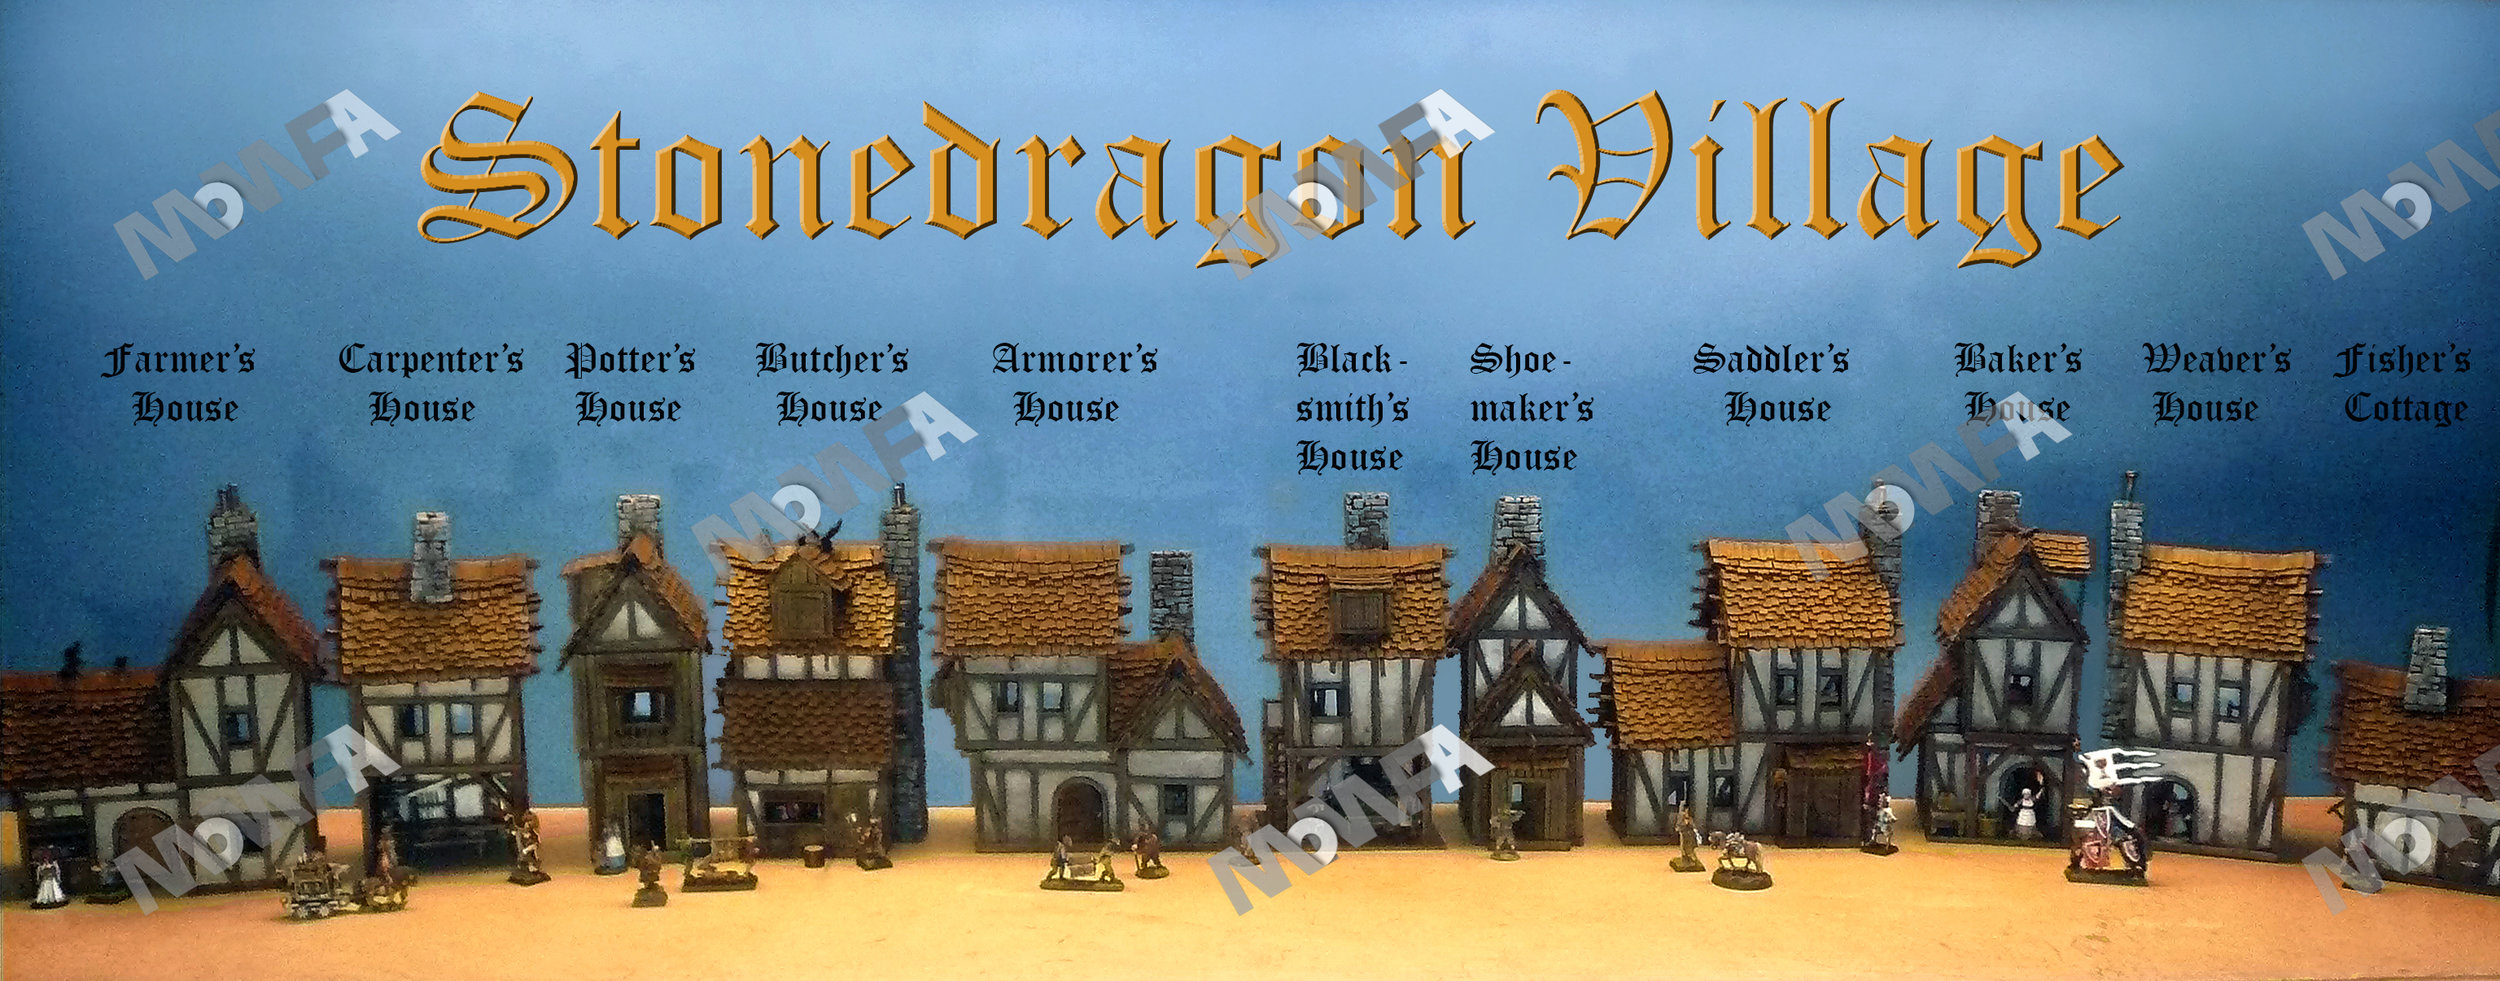 Stonedragon Village wm.jpg